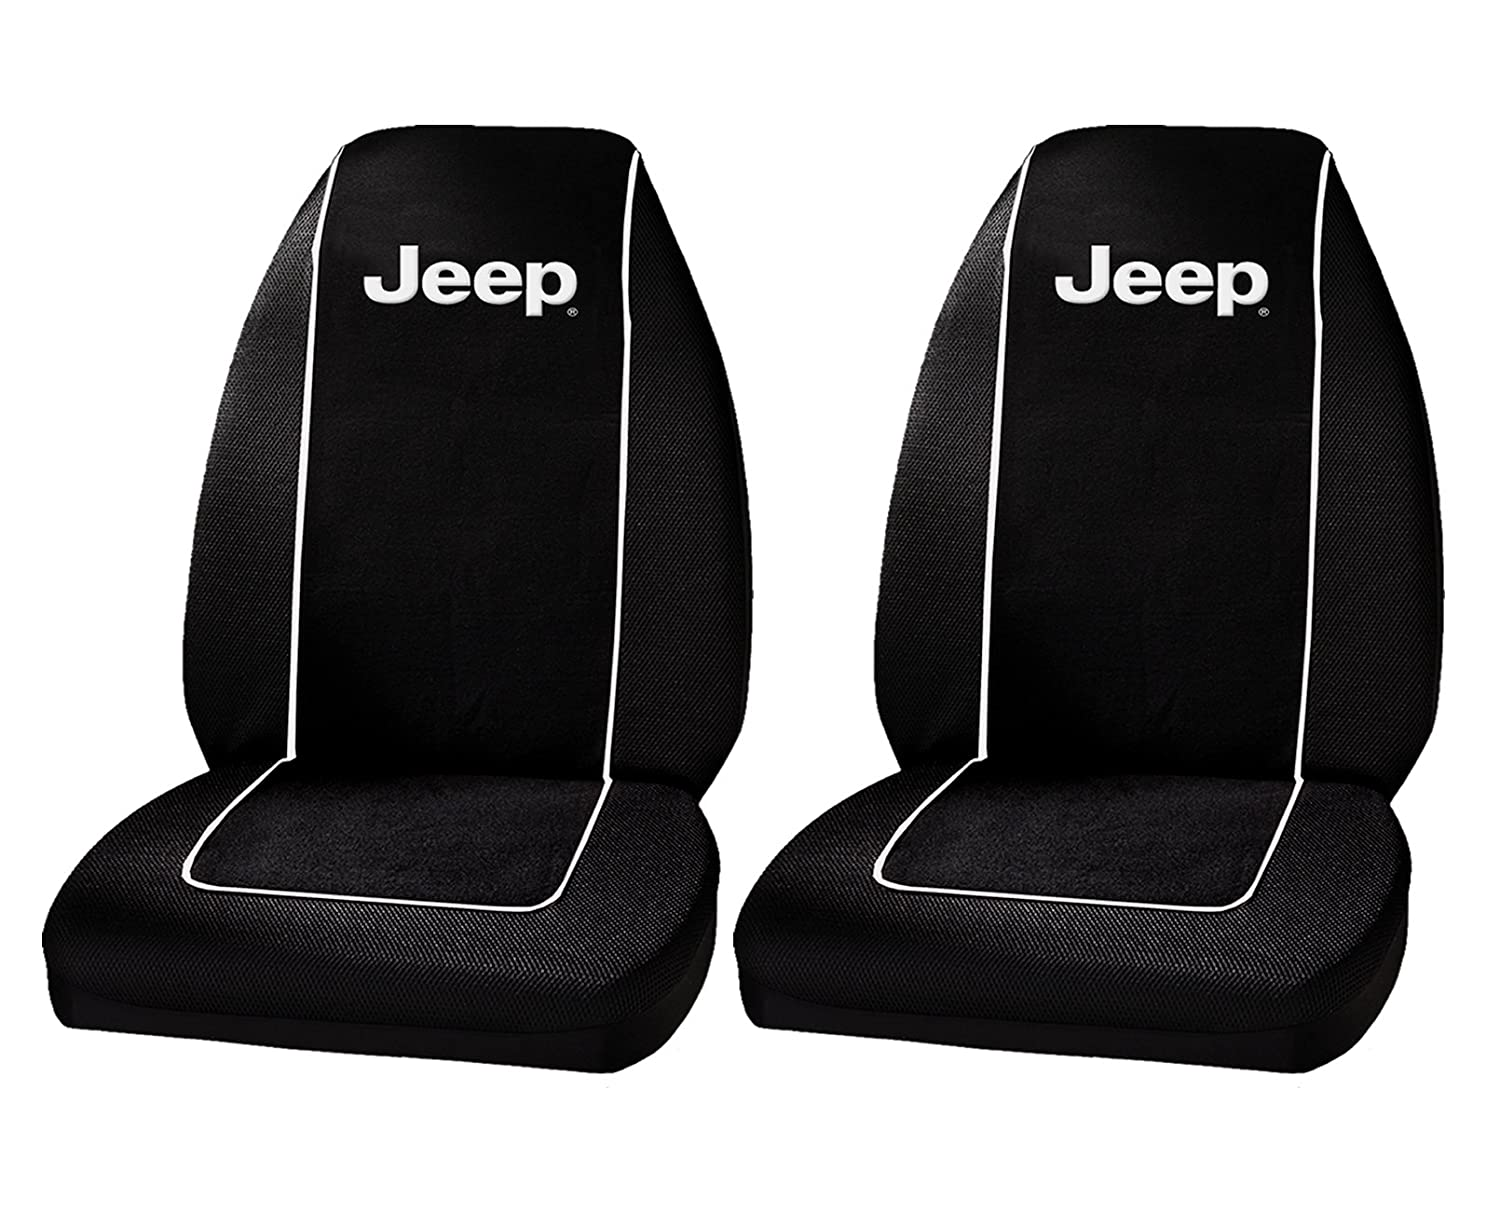 Plasticolor 6563R01 Jeep Wrangler Seat Covers